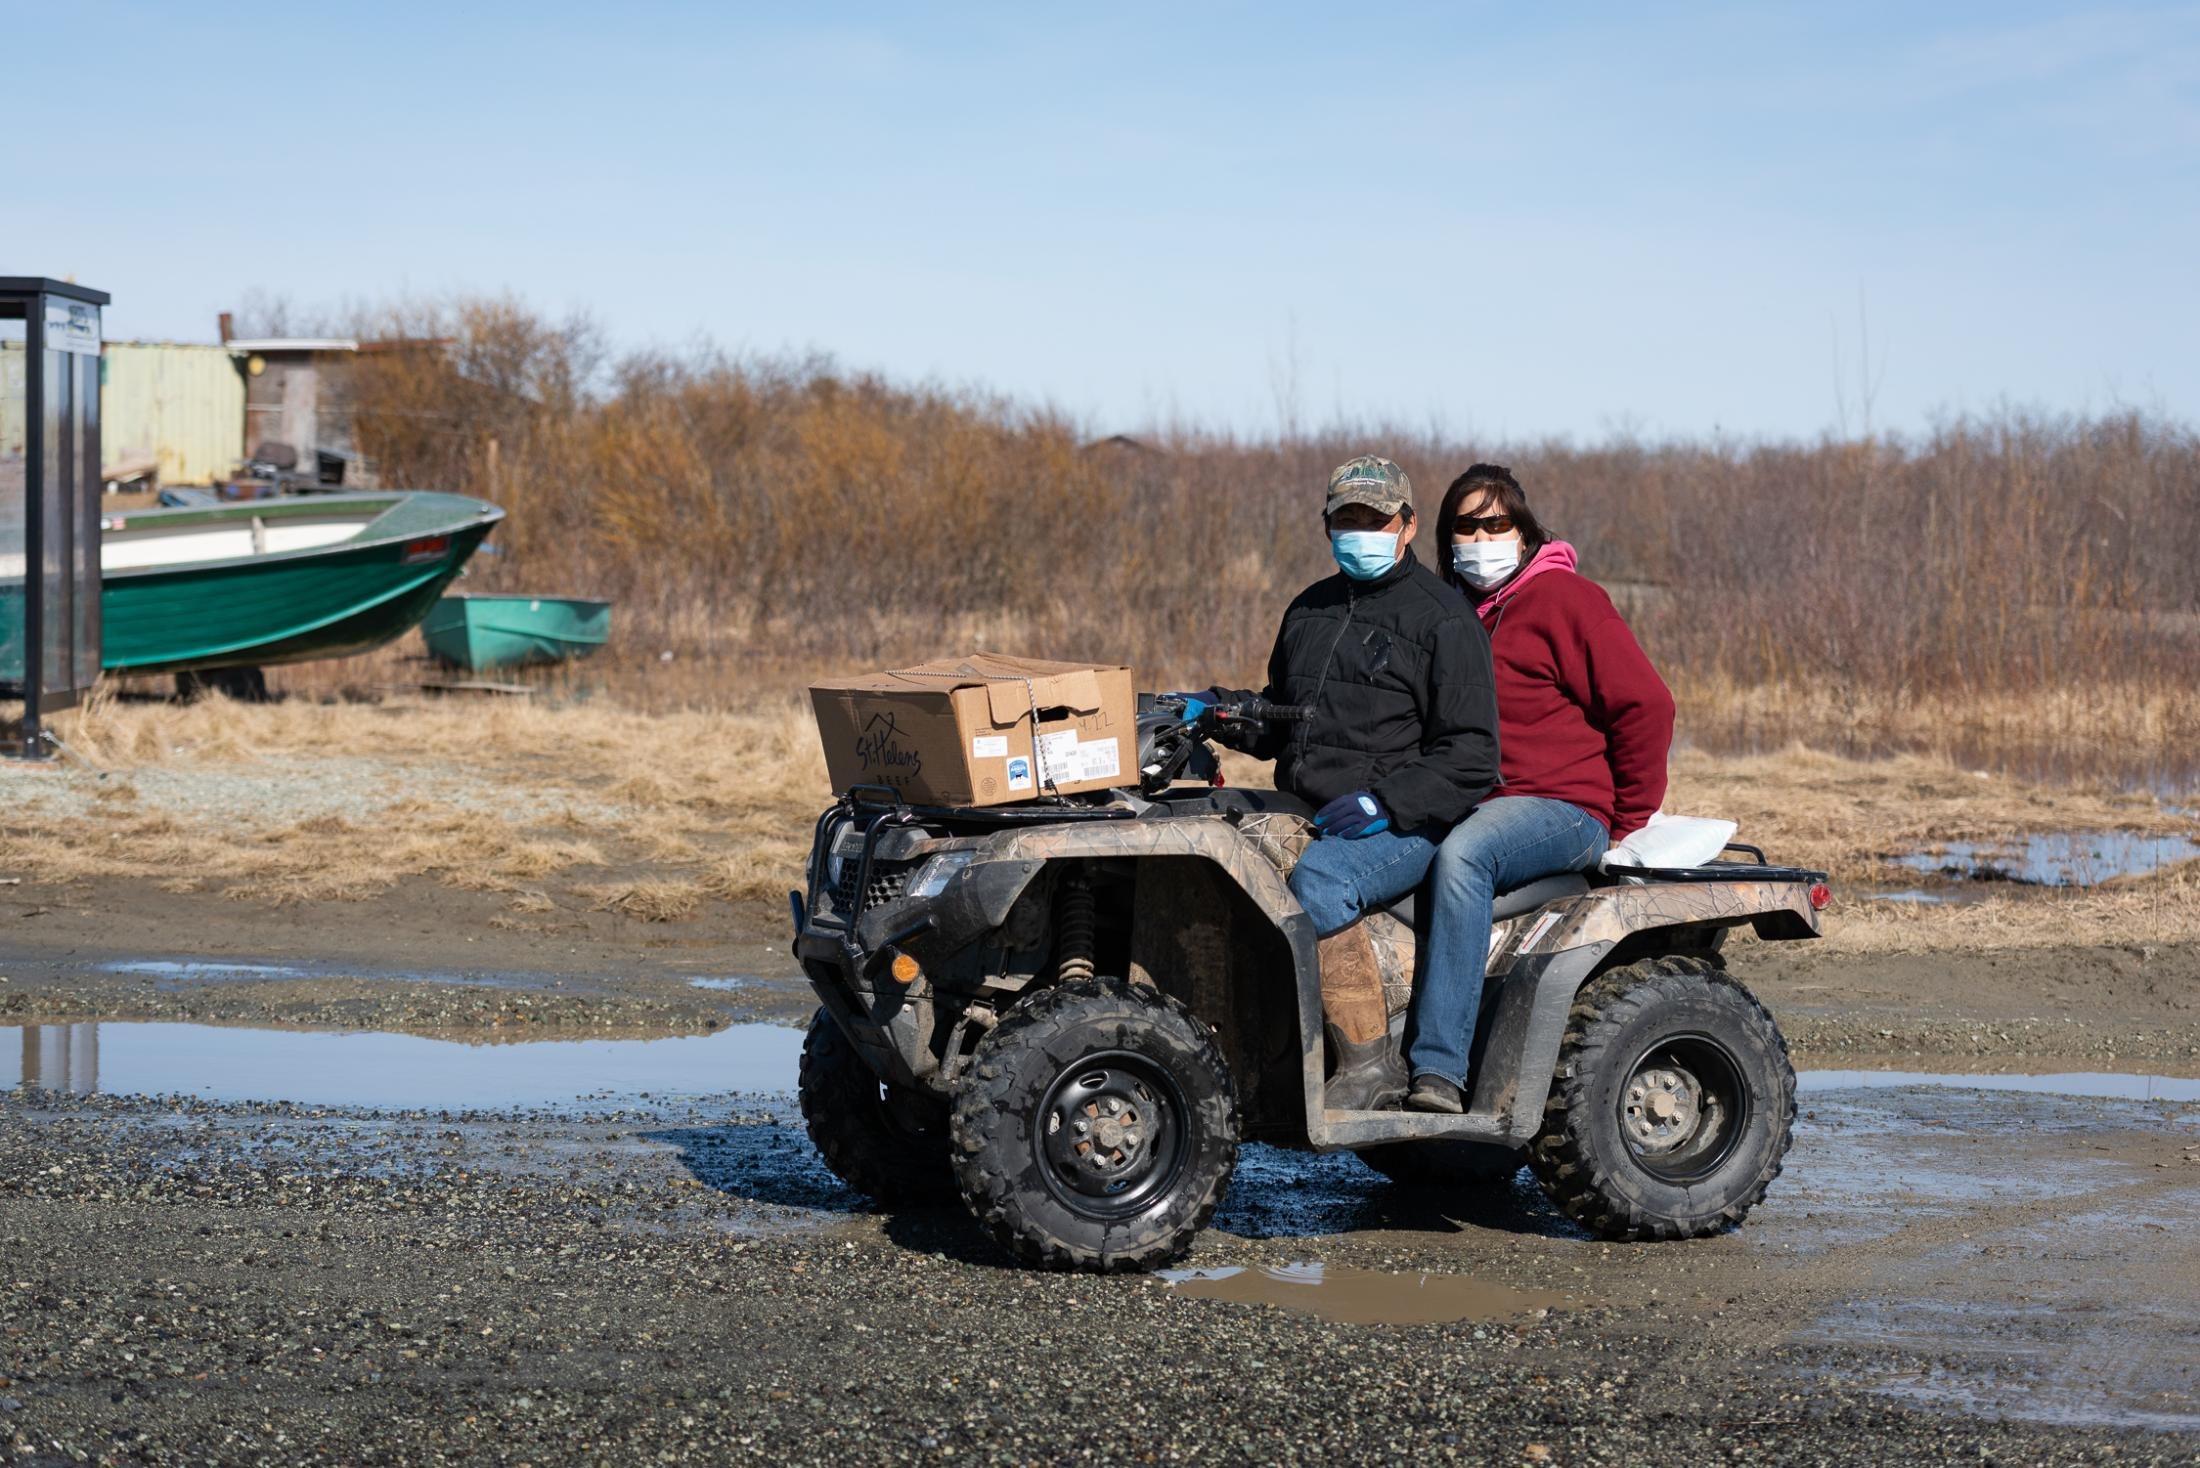 Bethel residents head out to check on elderly relatives amidst the 2020 Kuskokwim River break-up flood and coronavirus pandemic on May 6, 2020.